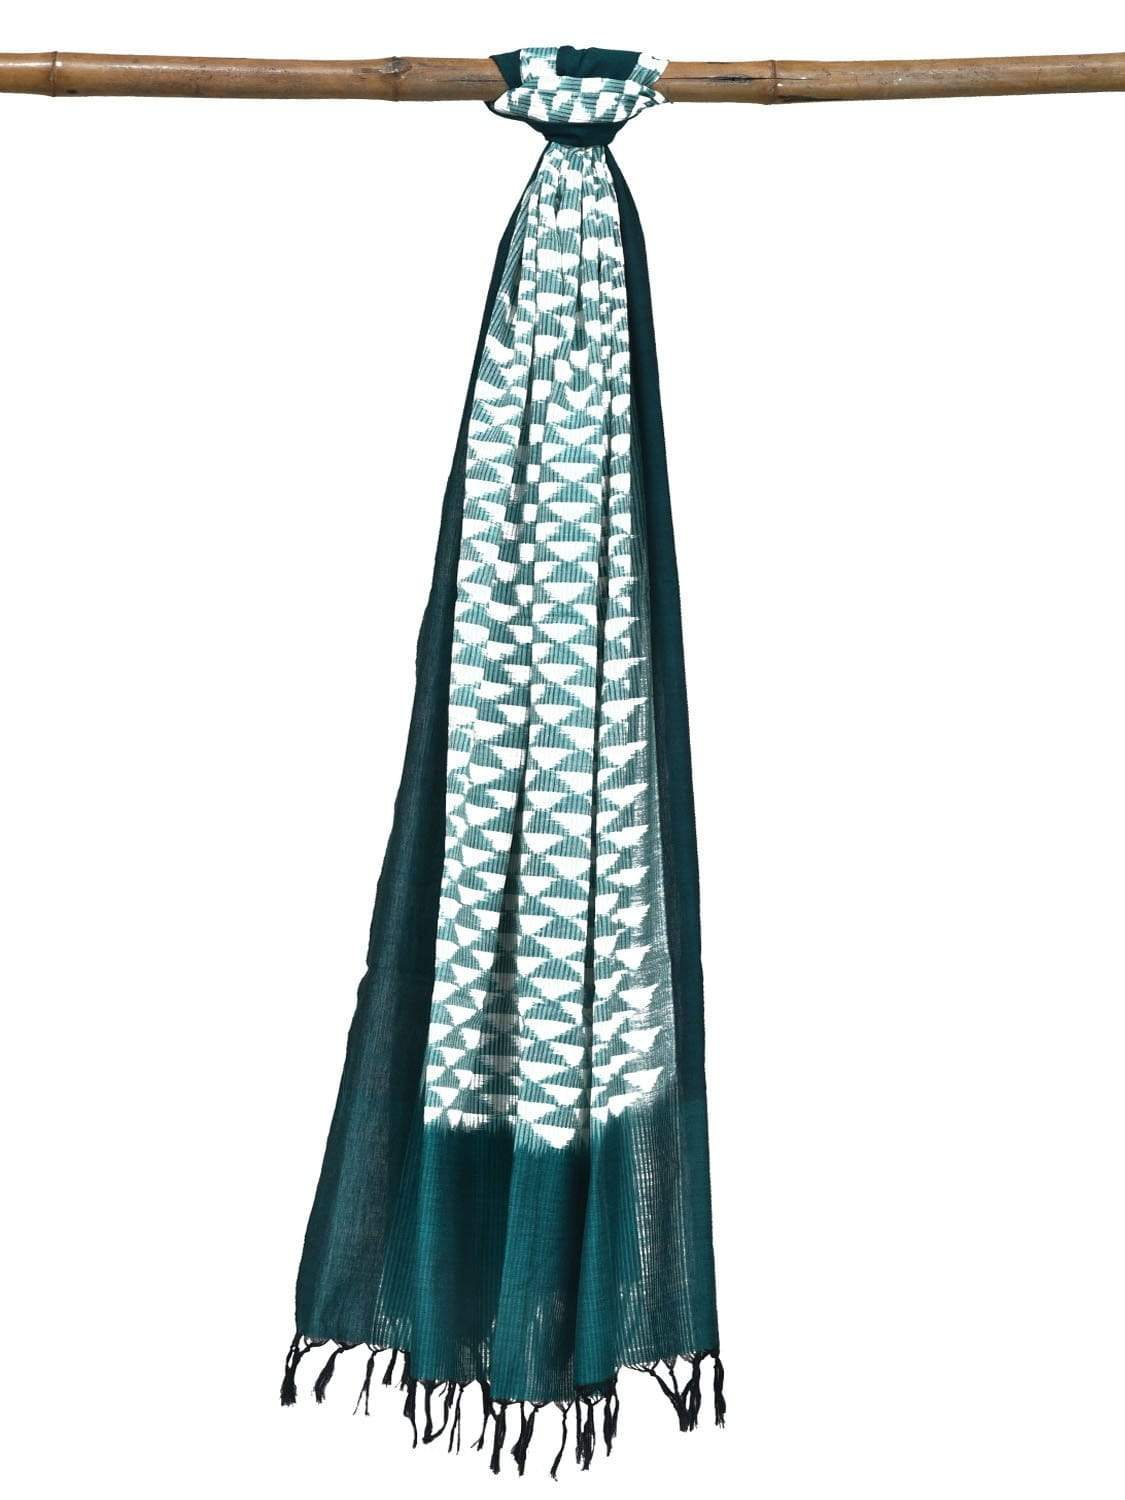 Green Pochampally Ikat Cotton Handloom Dupatta with Small Triangles Design ds1841